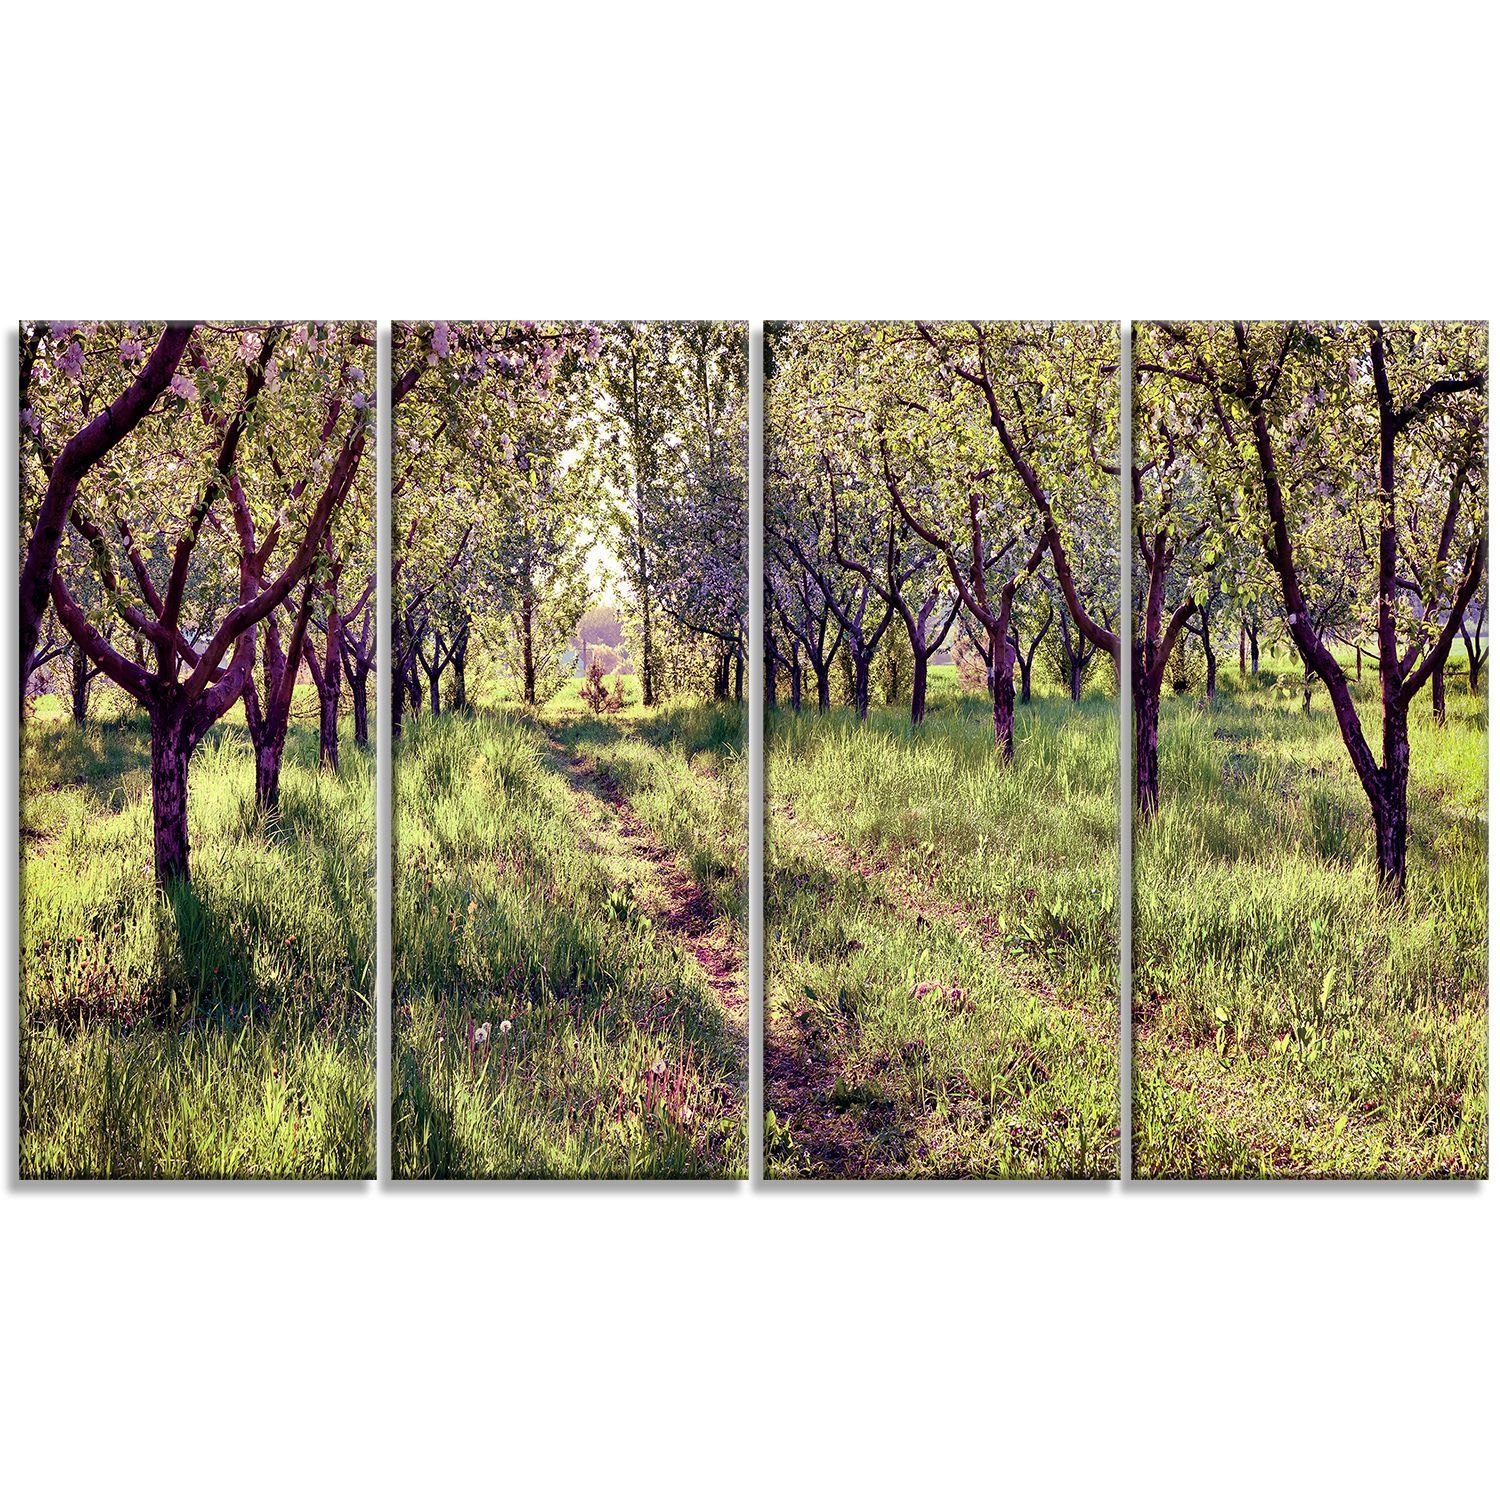 Designart blossom apples garden panels photography art print